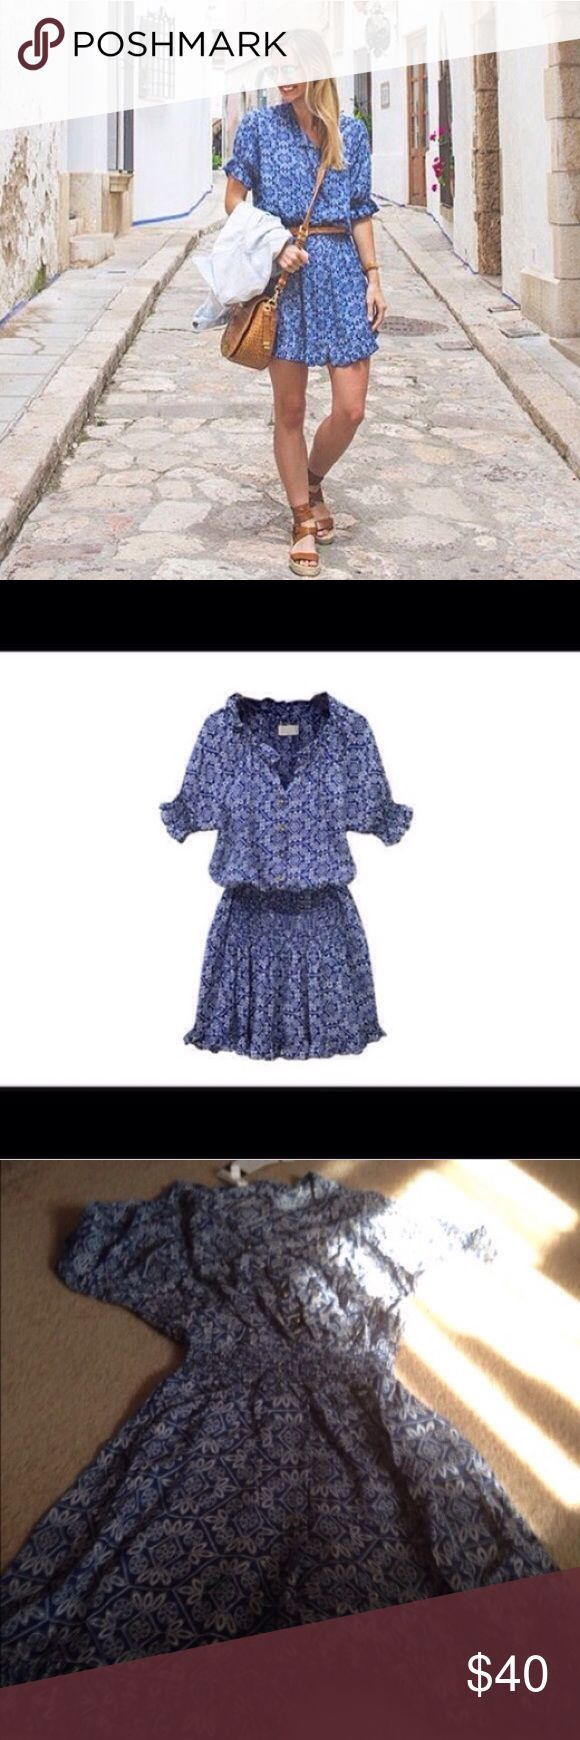 New Listing! NWT blue floral print dress NWT blue floral print dress size Medium. Last five images of the actual item for sale. Boutique brand is Favo Look. Can be a mini or midi dress length depending on your height. Like the item but not the price? Just make an offer and plz don't haggle in the comments section. Boutique Dresses Mini